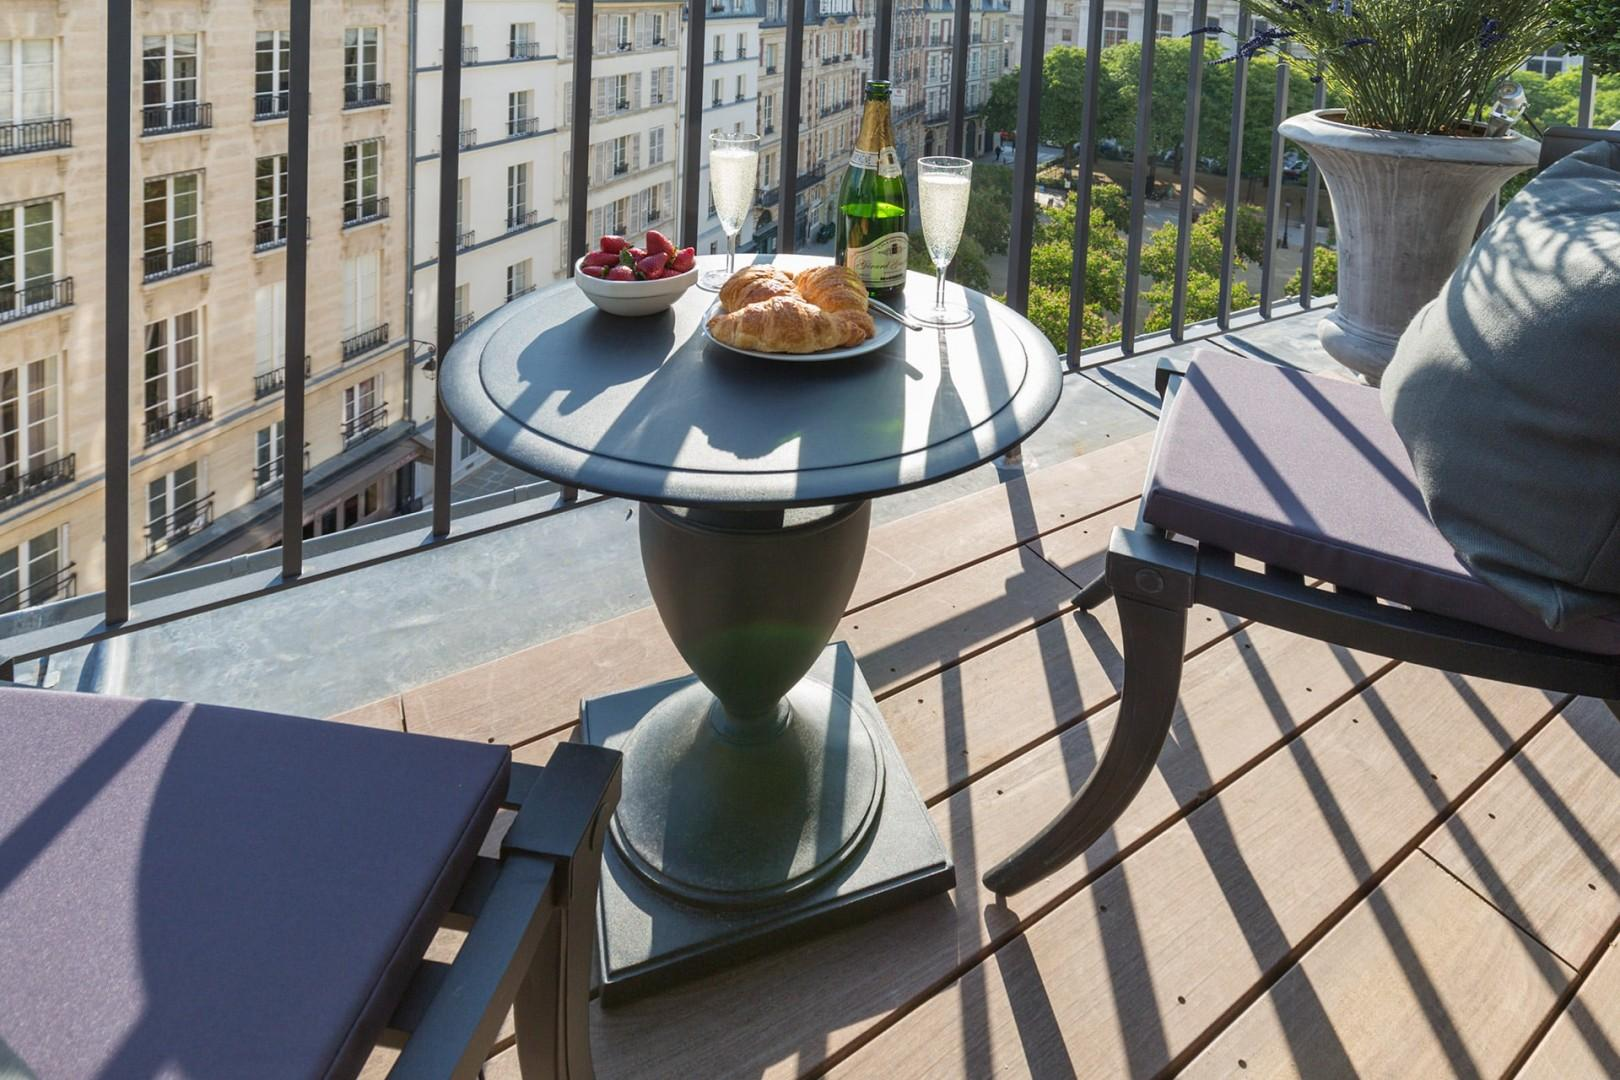 Enjoy your private balcony overlooking the lovely Place Dauphine.